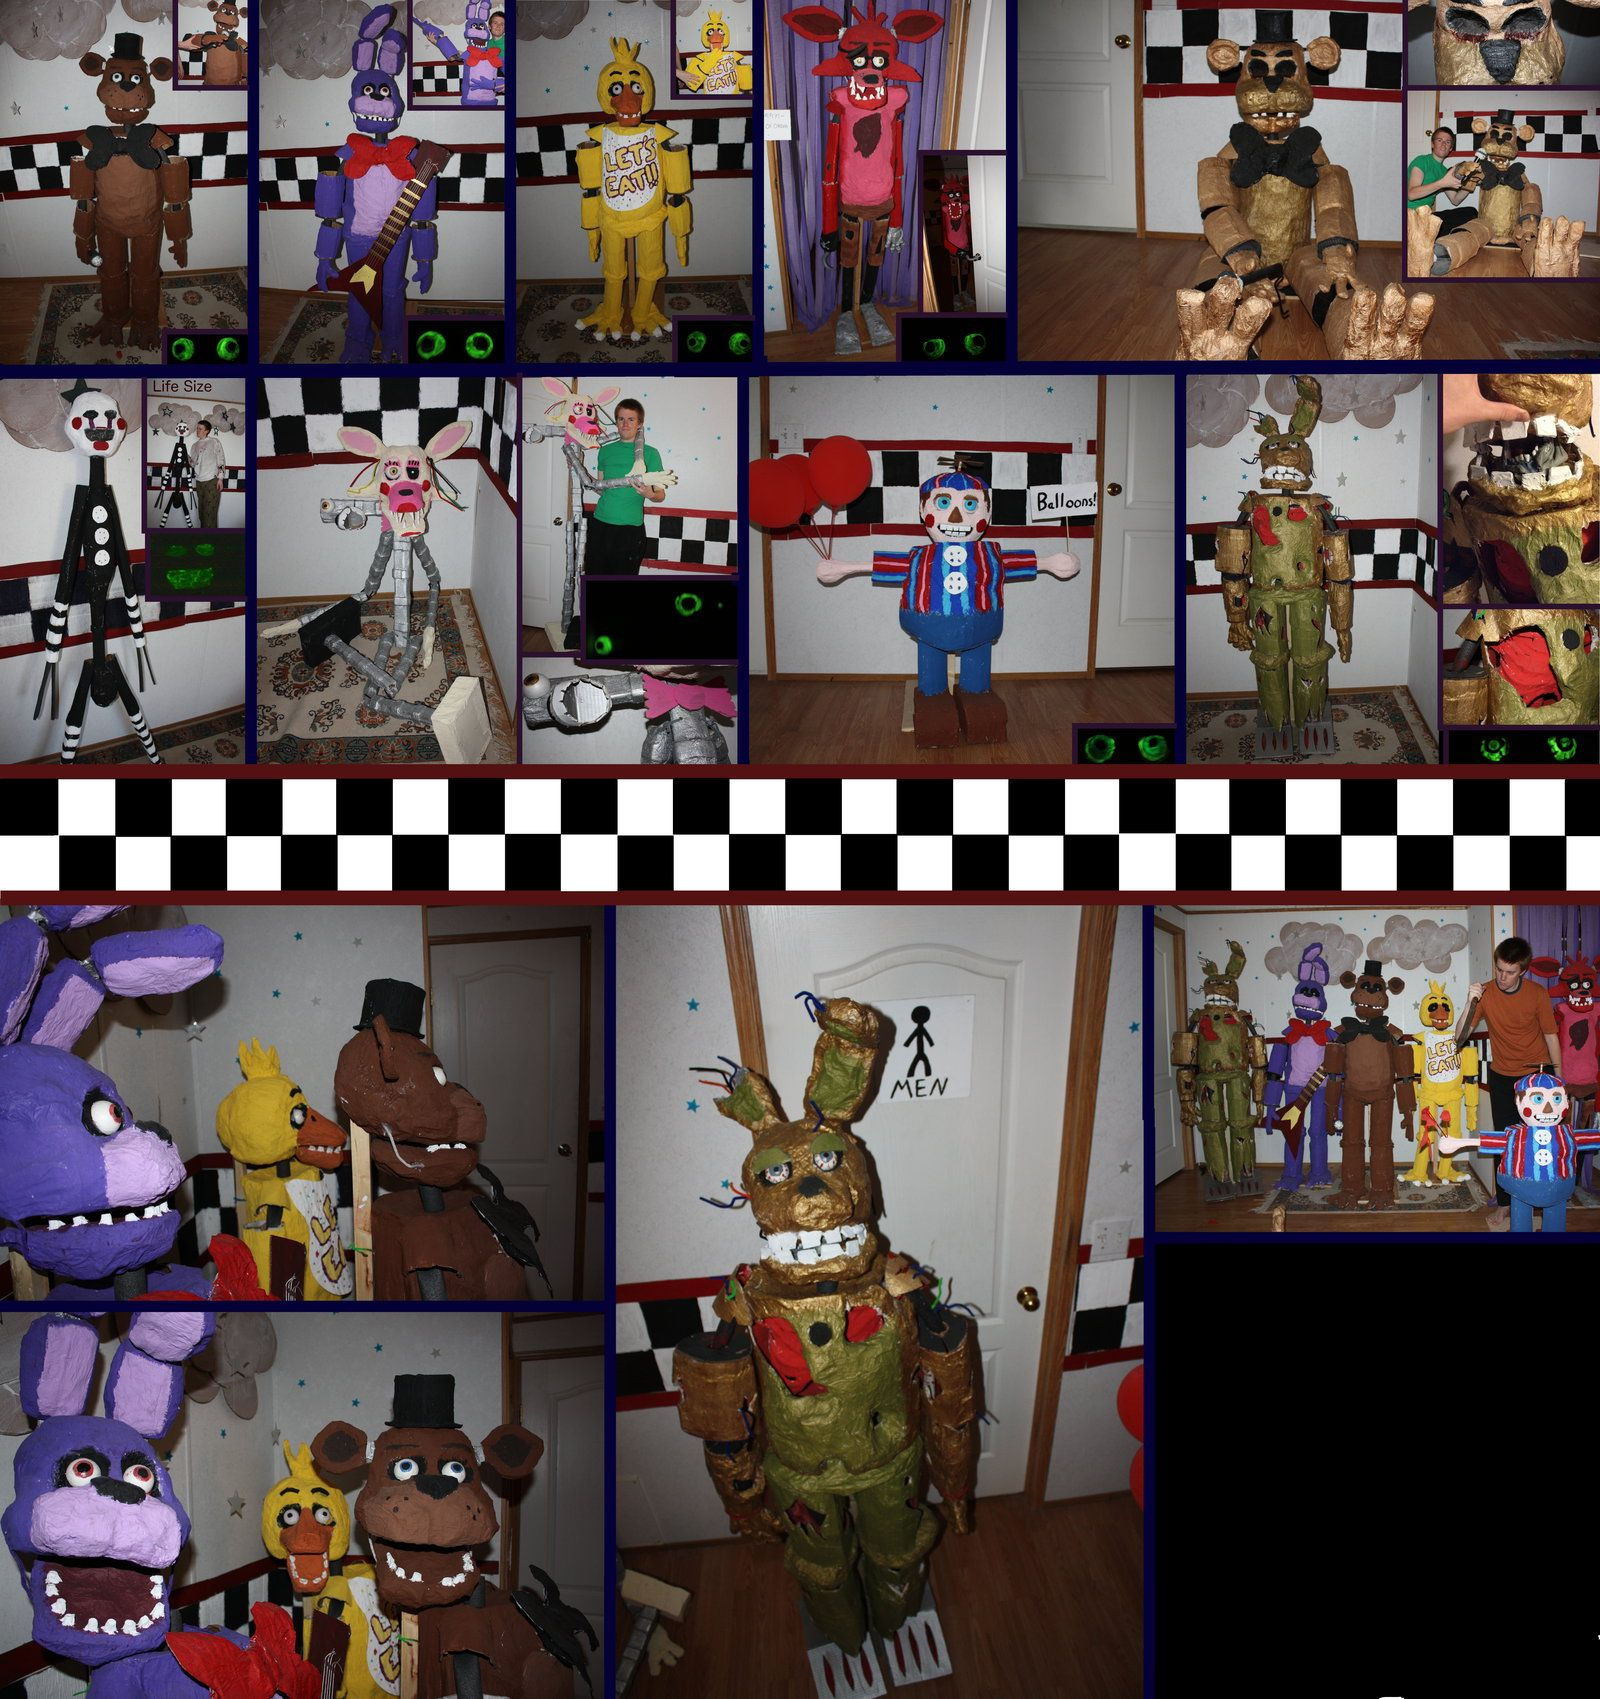 Five Nights At Freddy S In Real Life By Tommygk On Deviantart